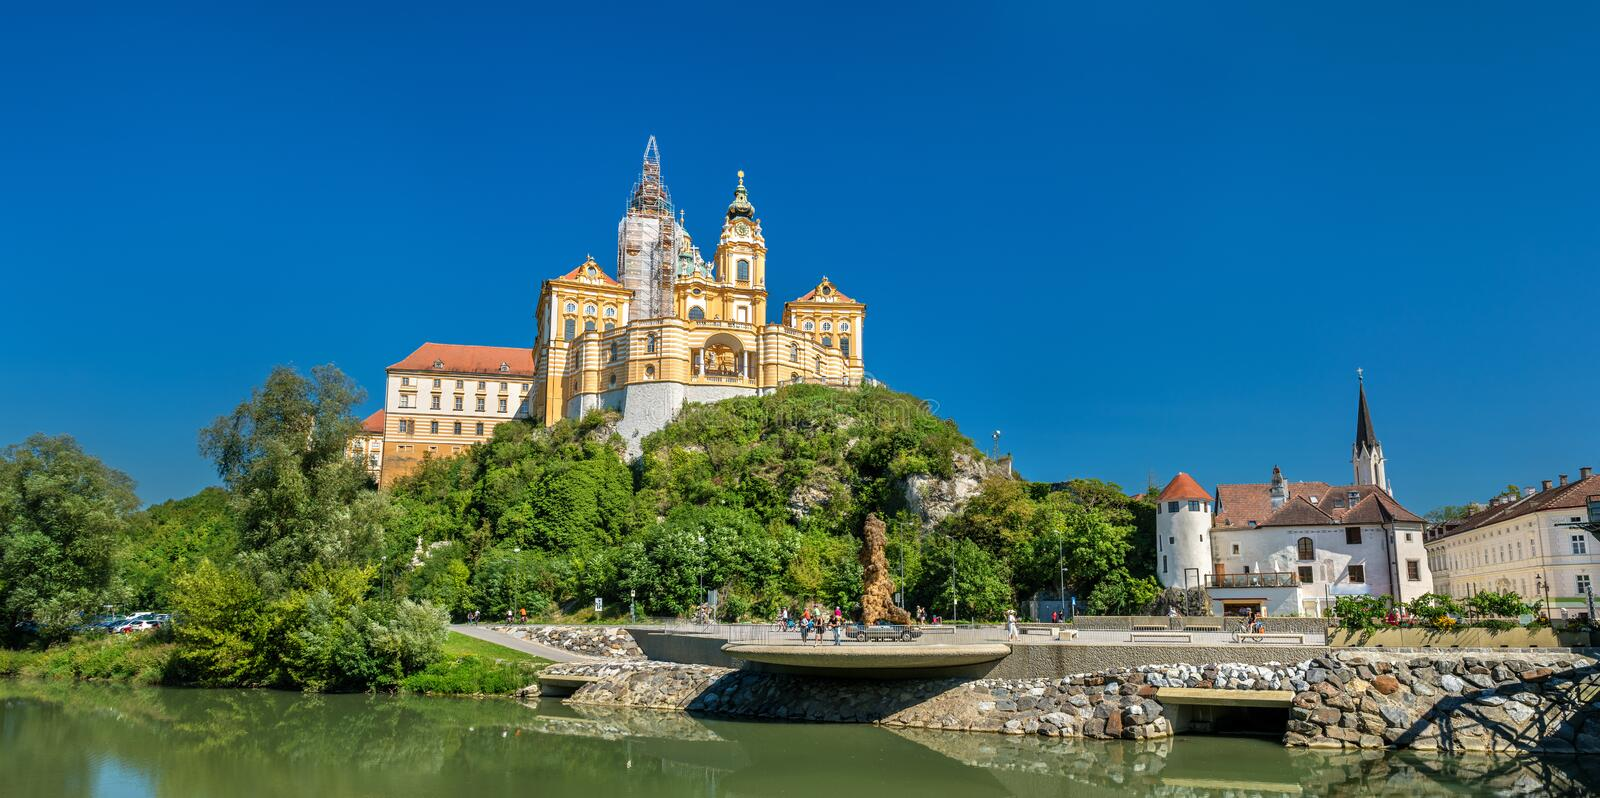 View of Stift Melk, a Benedictine abbey above the town of Melk in Austria royalty free stock photography